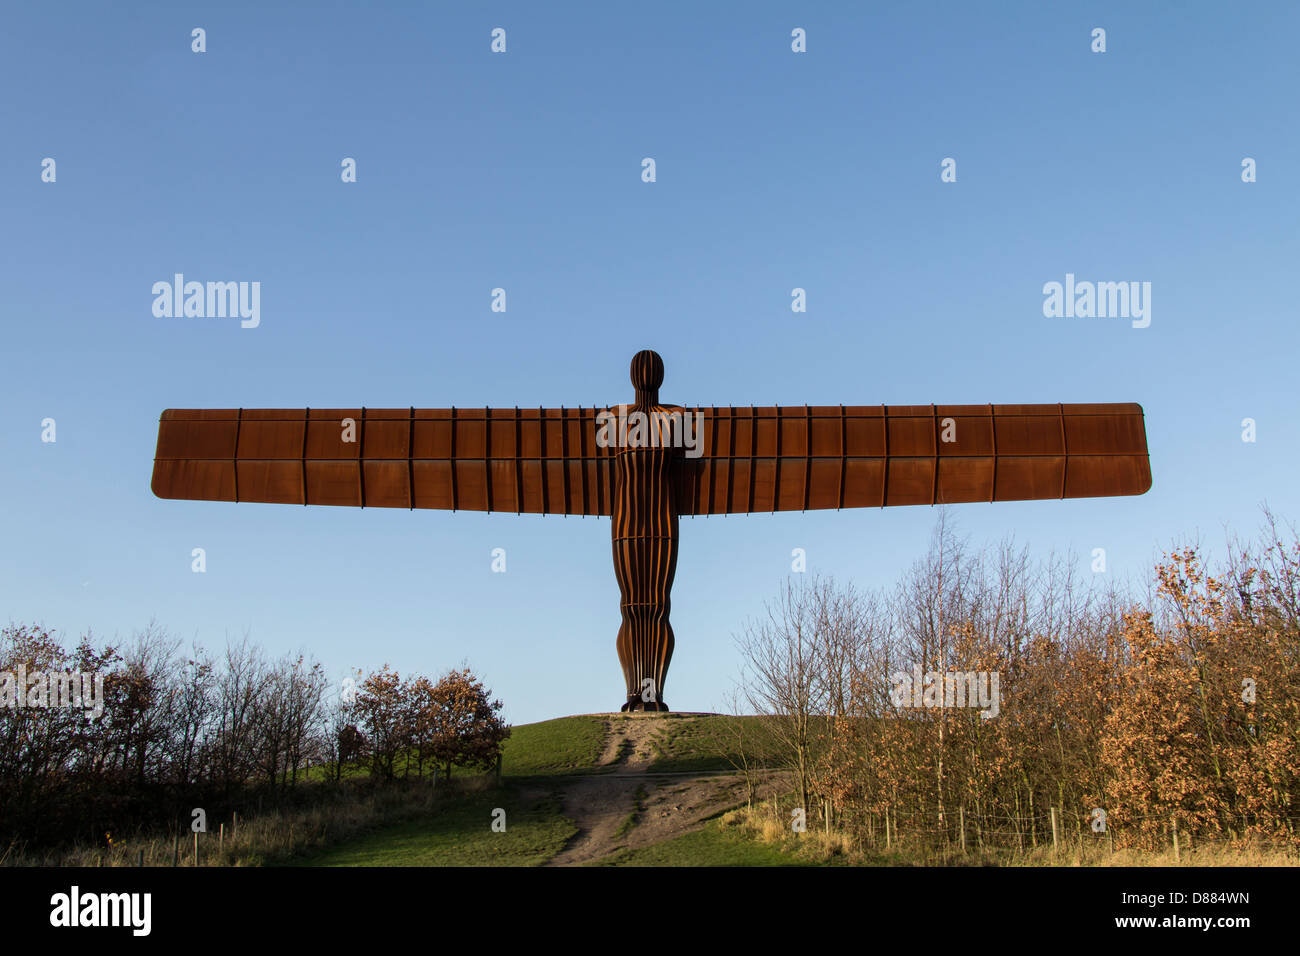 An image of the angel of the north which stands at the side of the A1 motorway, near Gateshead in the Northeast - Stock Image